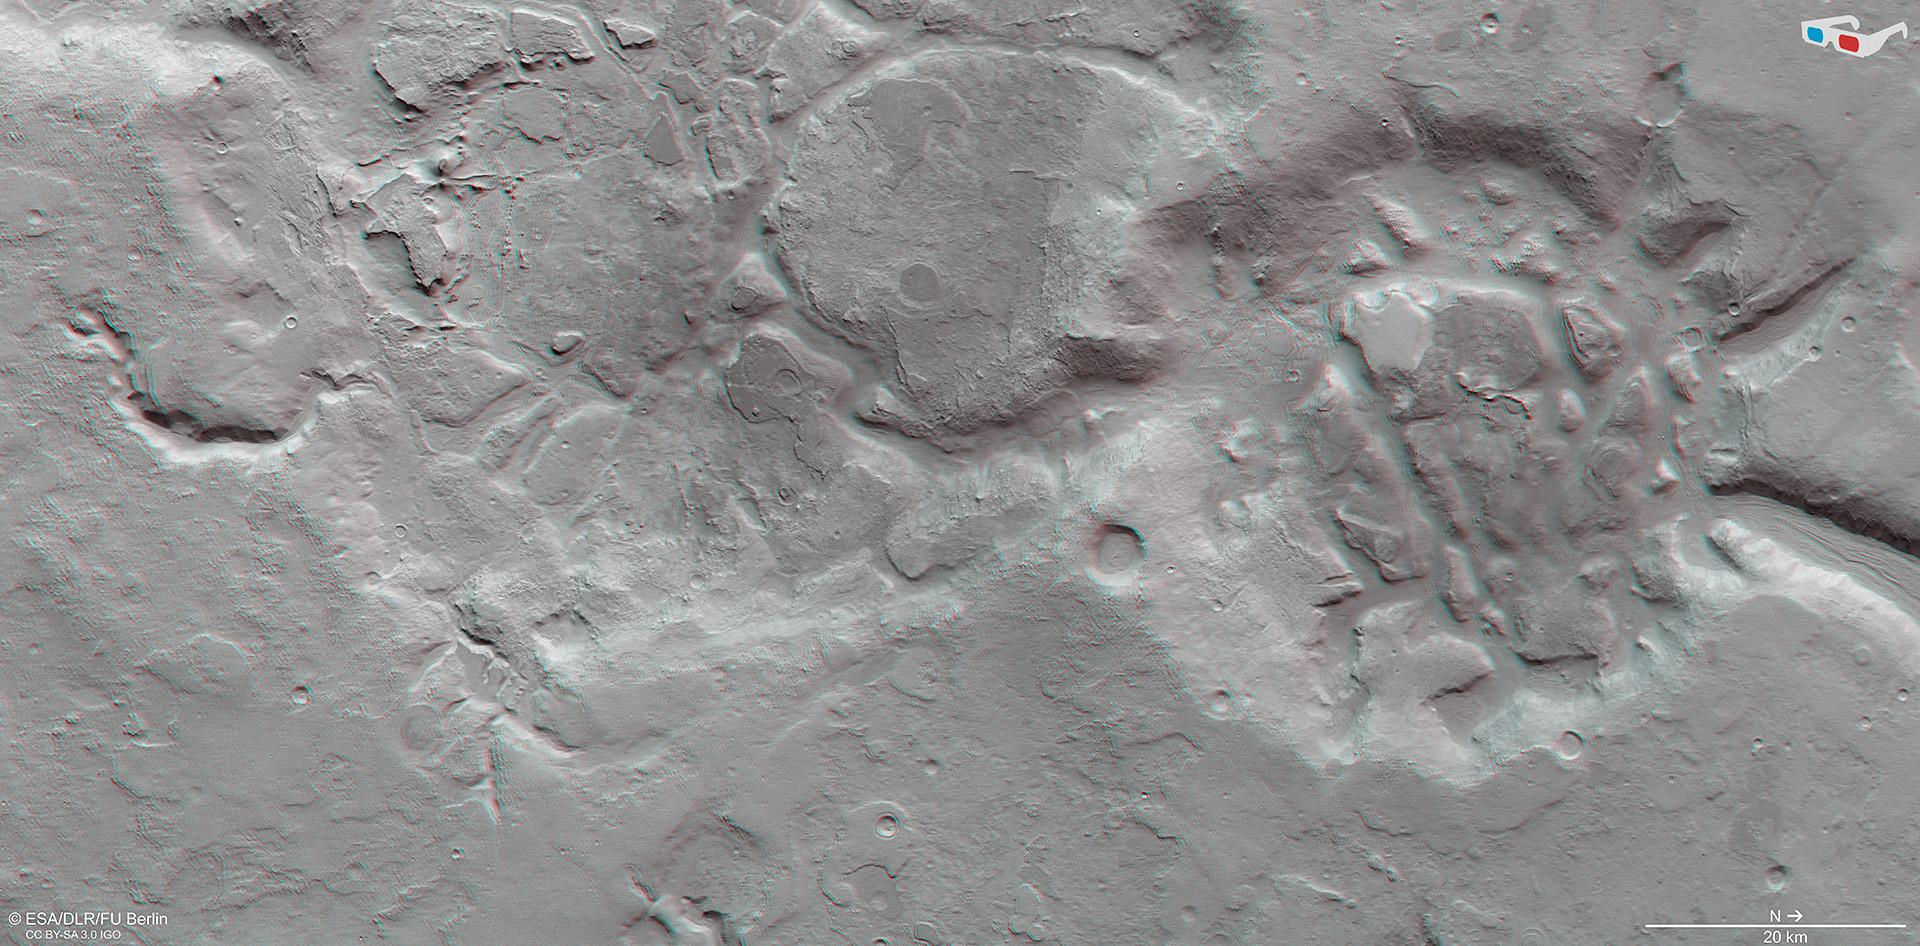 3D view of a part of the Nilosyrtis Mensae region